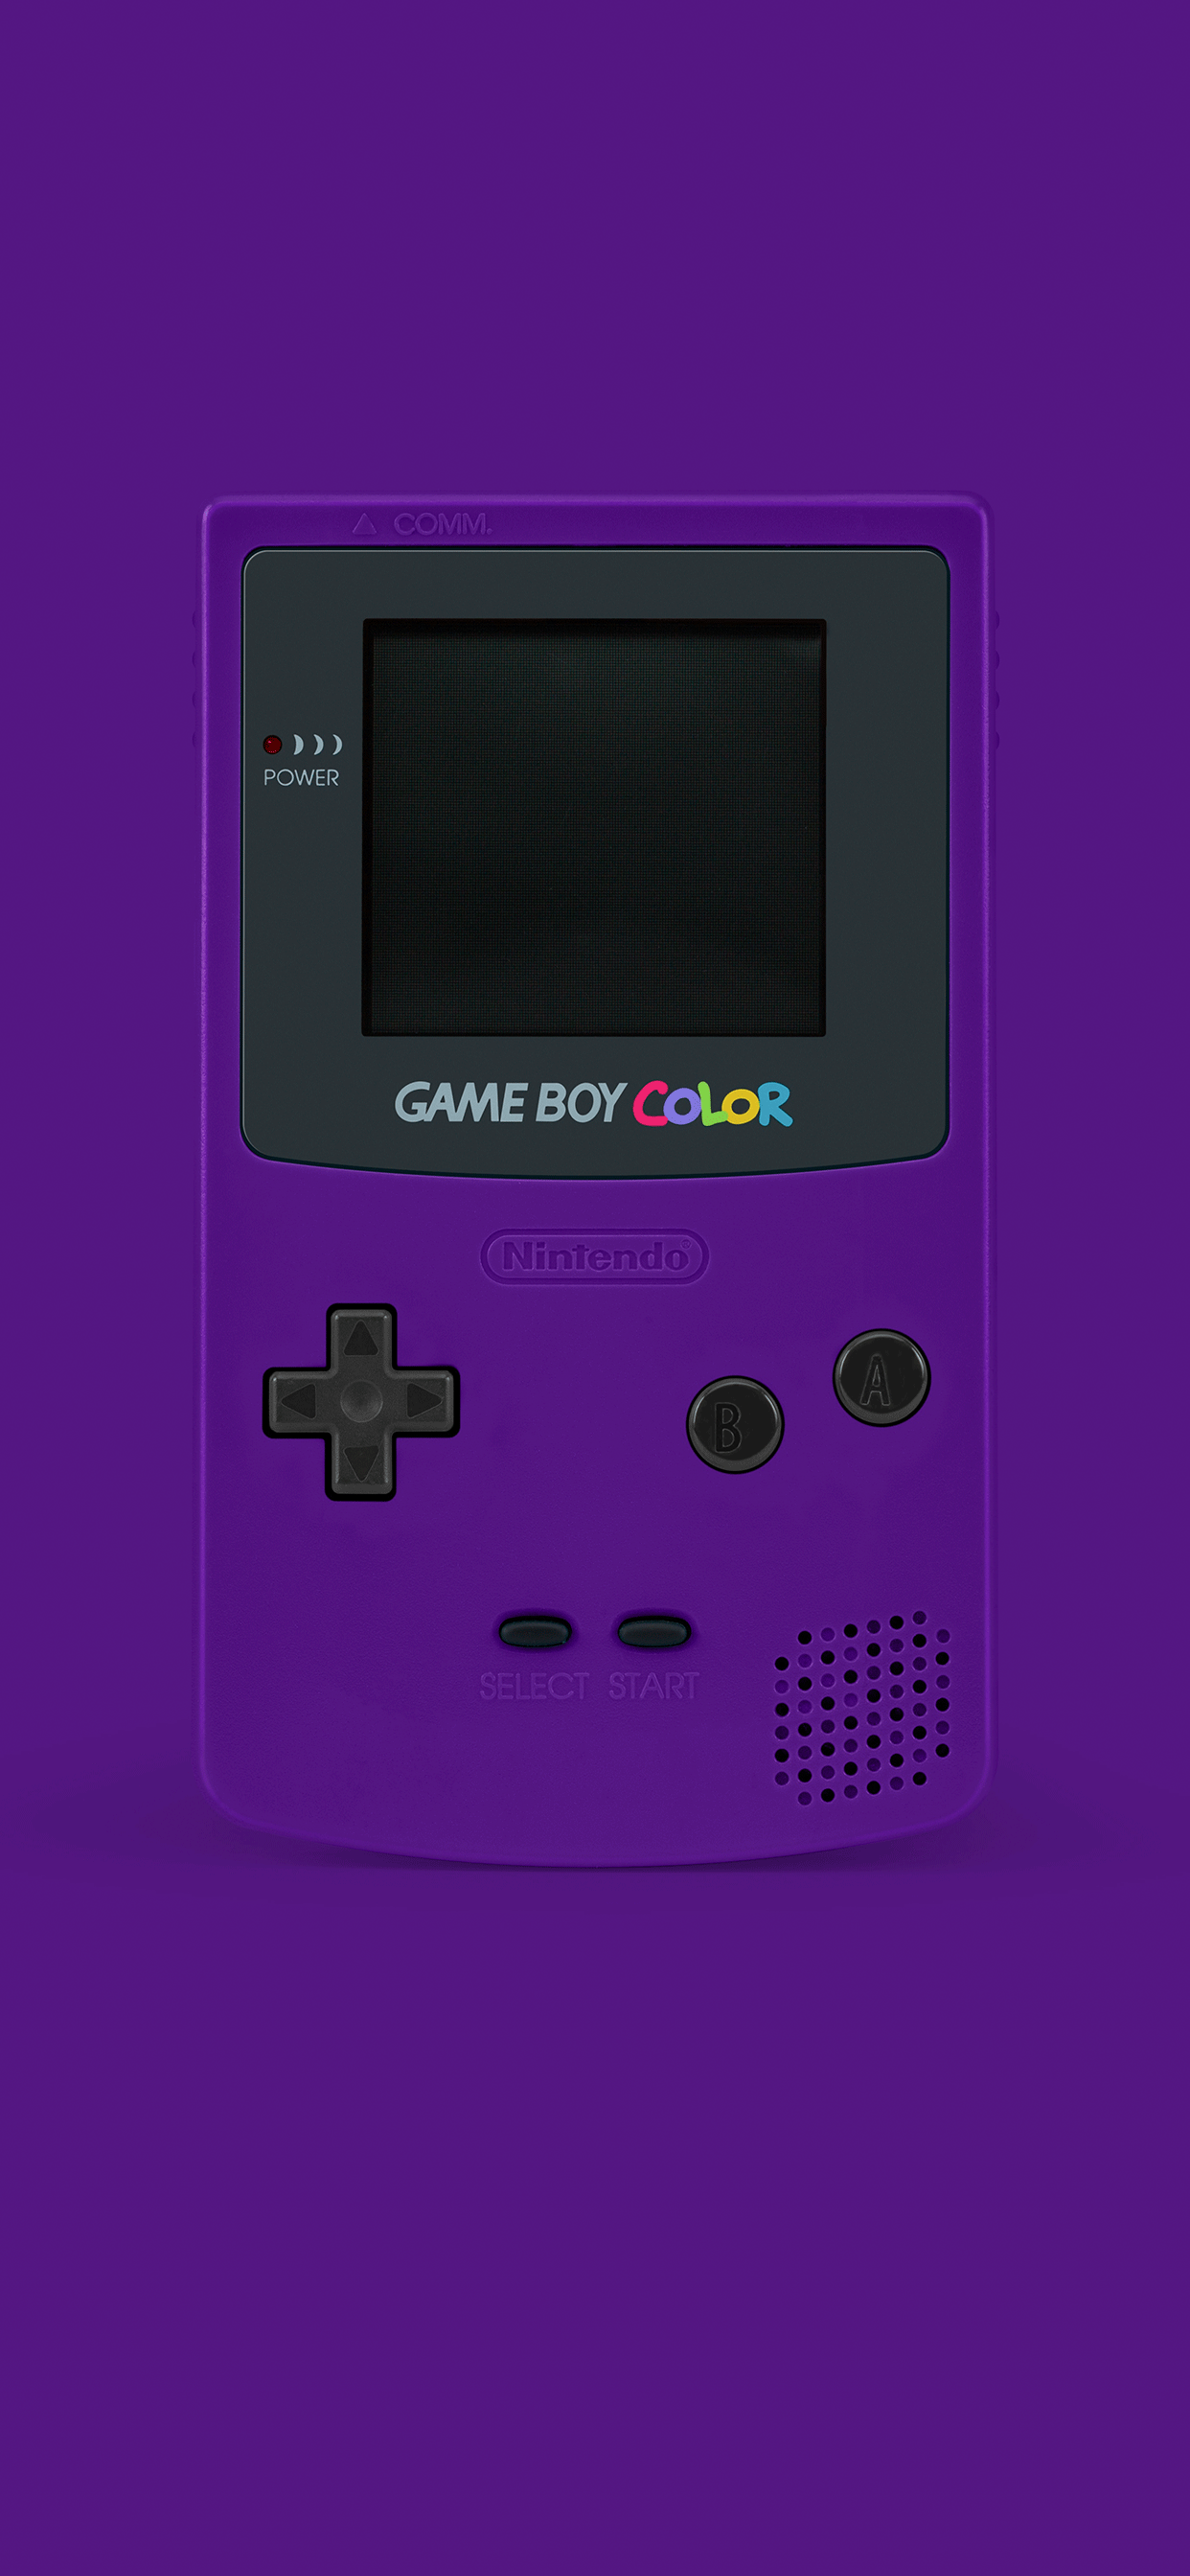 iPhone wallpapers game boy color purple Fonds d'écran iPhone du 10/05/2019